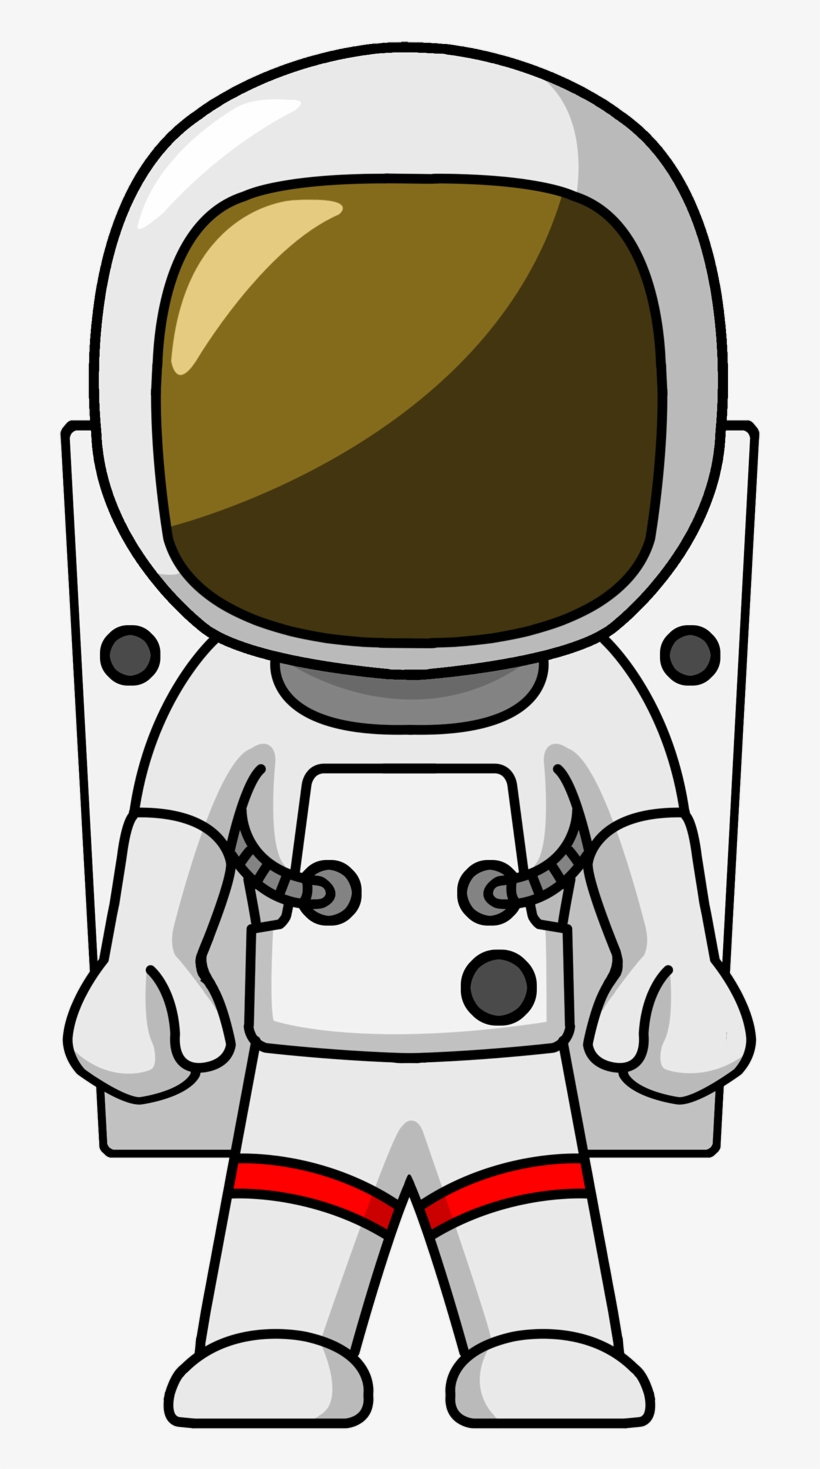 medium resolution of astronaut clip art images free for commercial use transparent background astronaut clipart